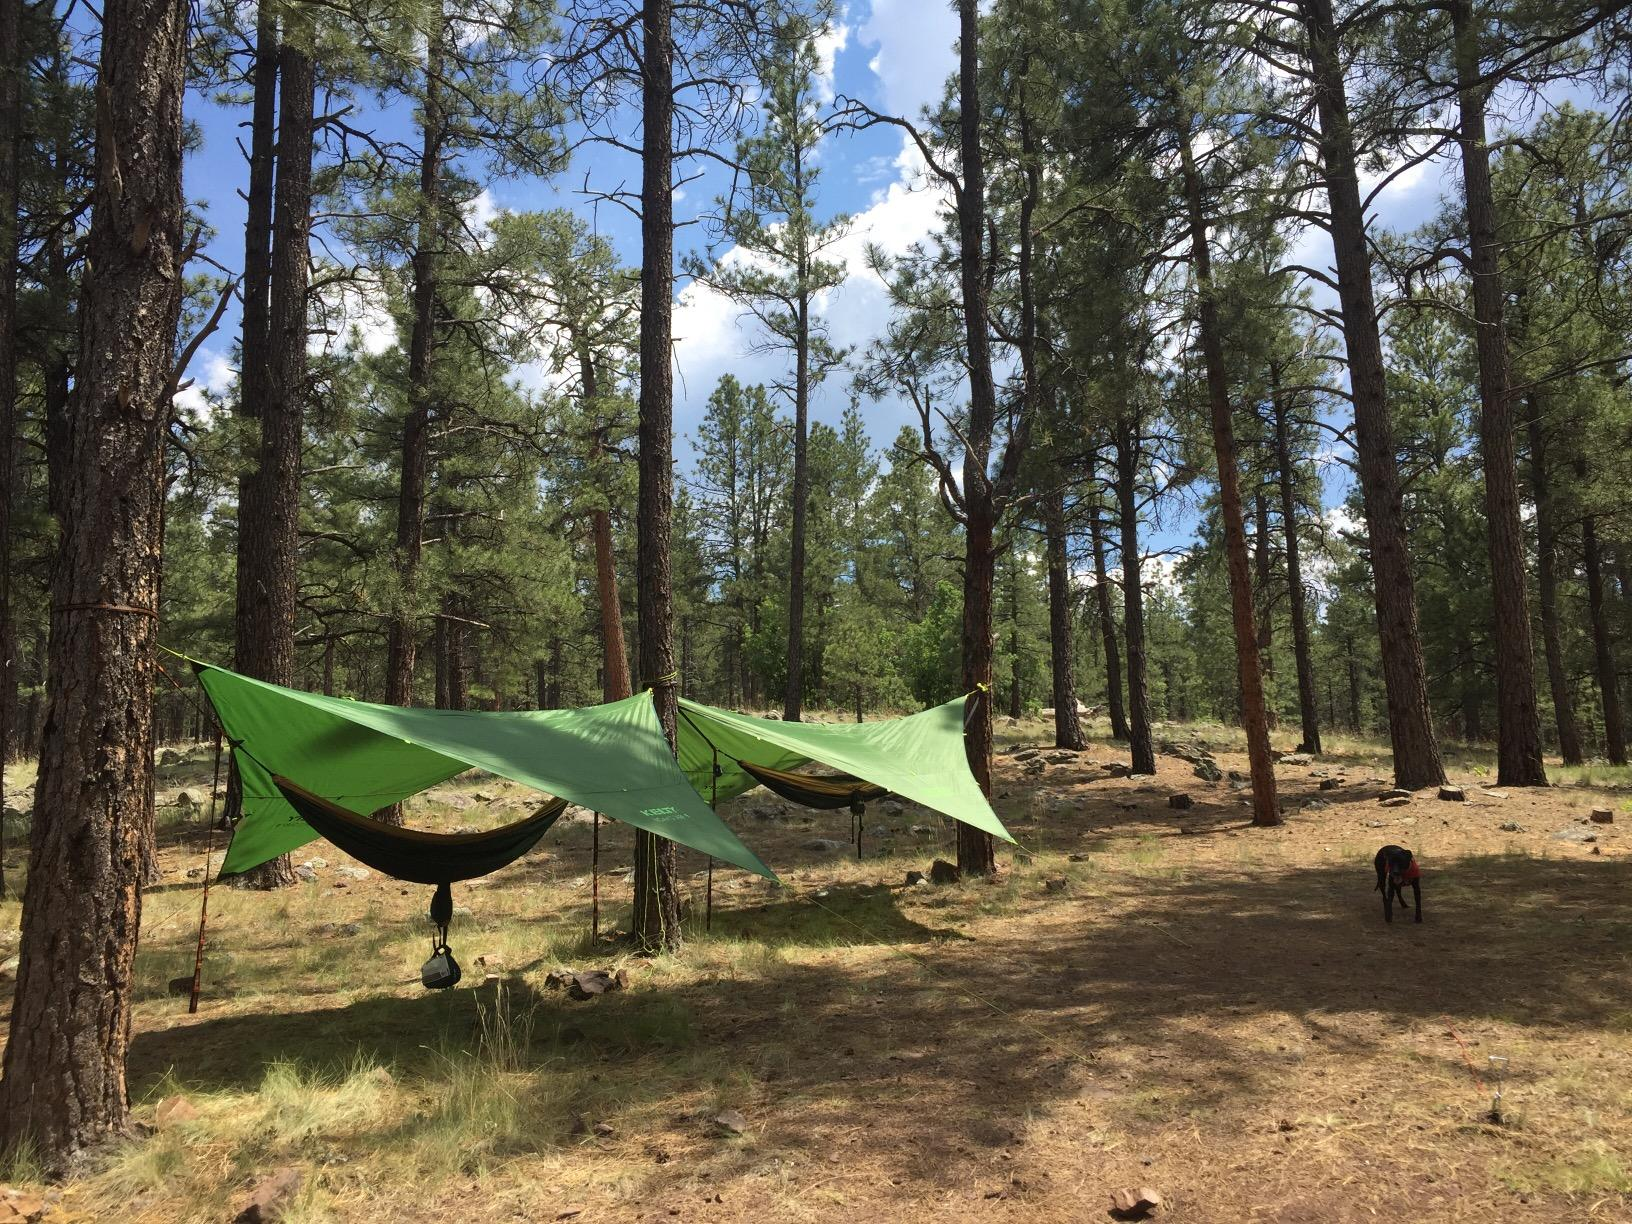 Kelty Noah's Tarp 12 -Rained on numerous times and no leaks at all